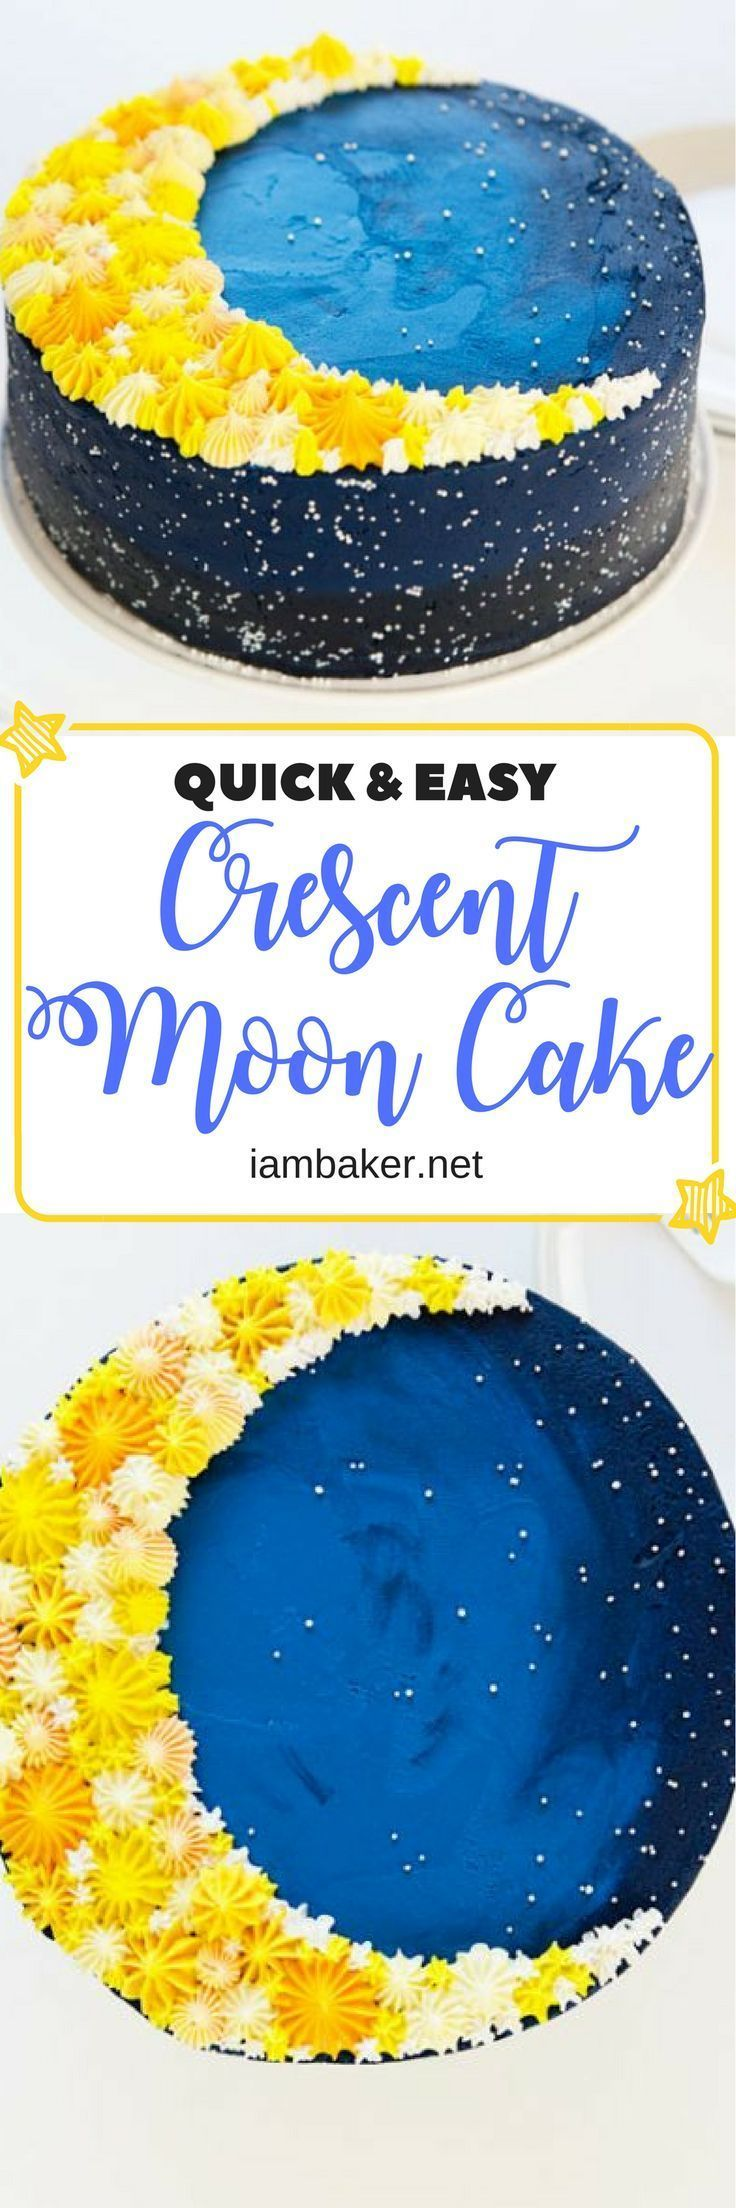 Learn how to decorate a delicious cake through this quick and easy Crescent moon cake! Your kids will surely love this! | iambaker.net | Food Recipes | Sweet Desserts #dessert